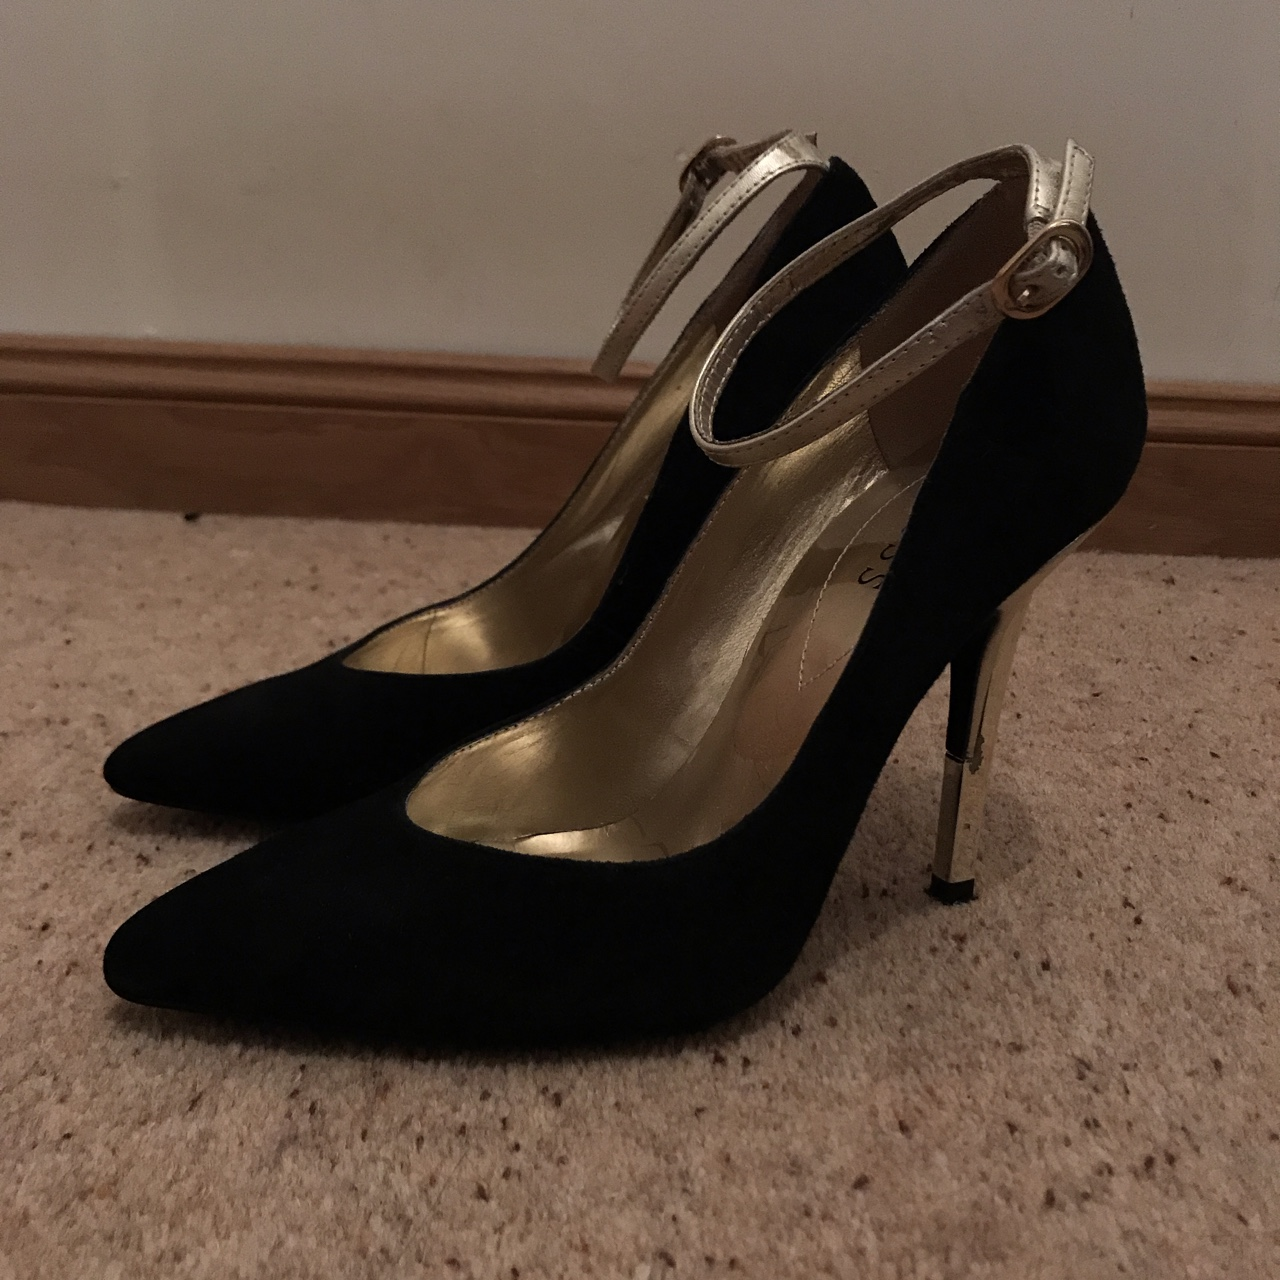 Guess Size 5 Black Suede Heels with